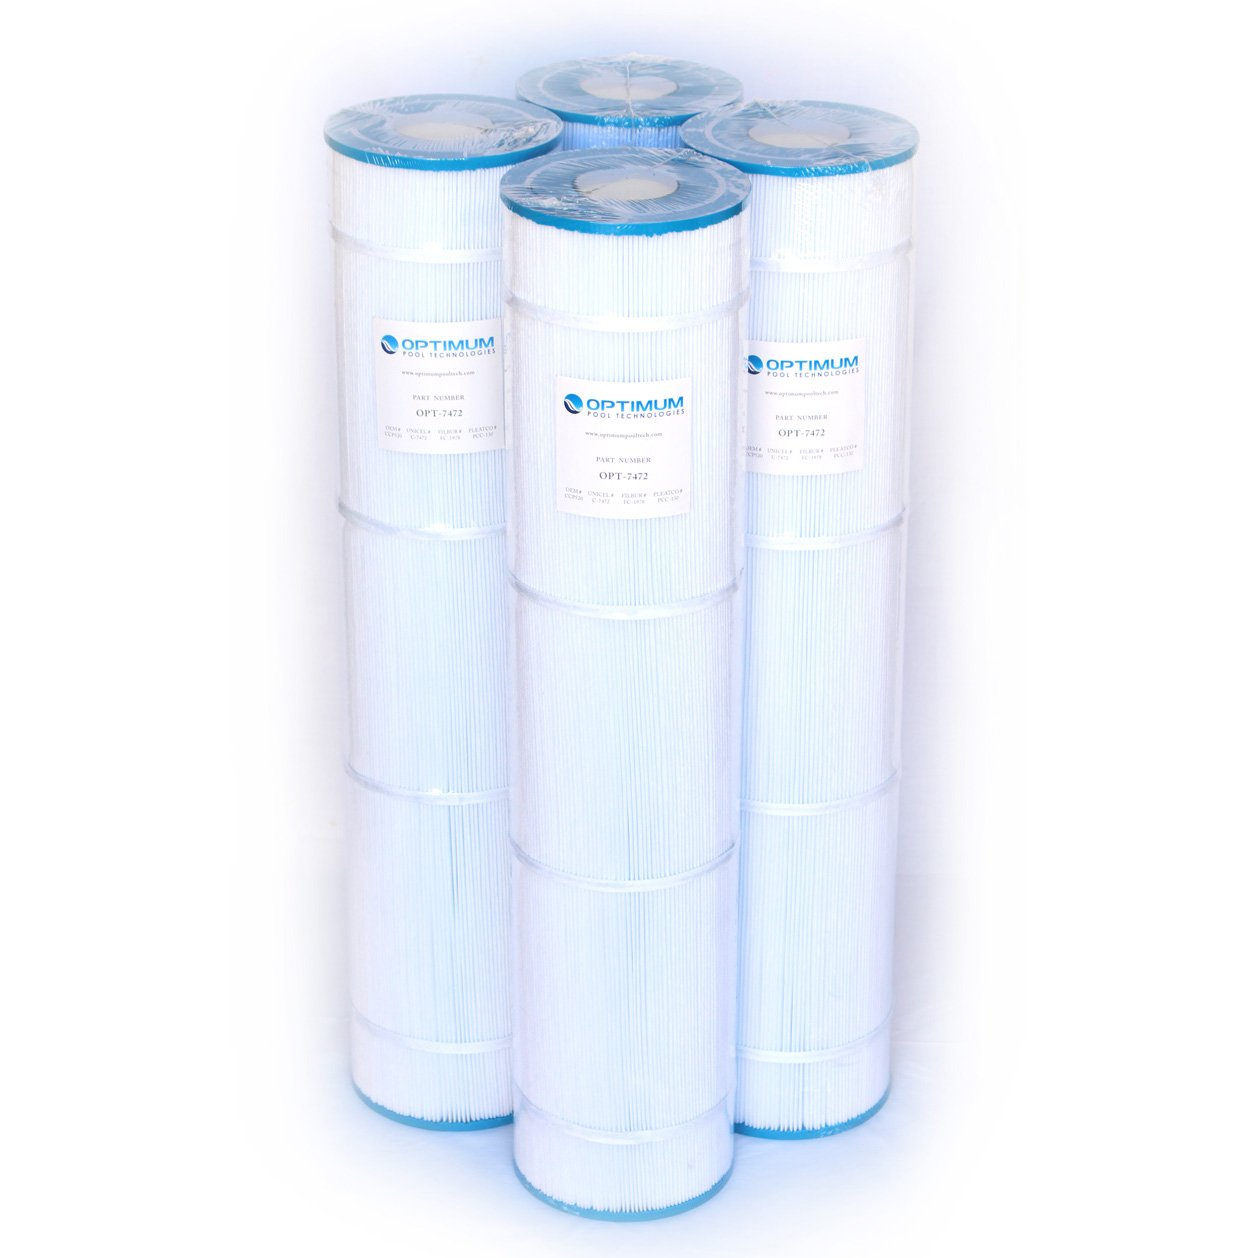 Pool Filter 4 Pack Replacement for Pentair Clean /& Clear Plus 520; 125//130 SQ.FT Cartridge Element